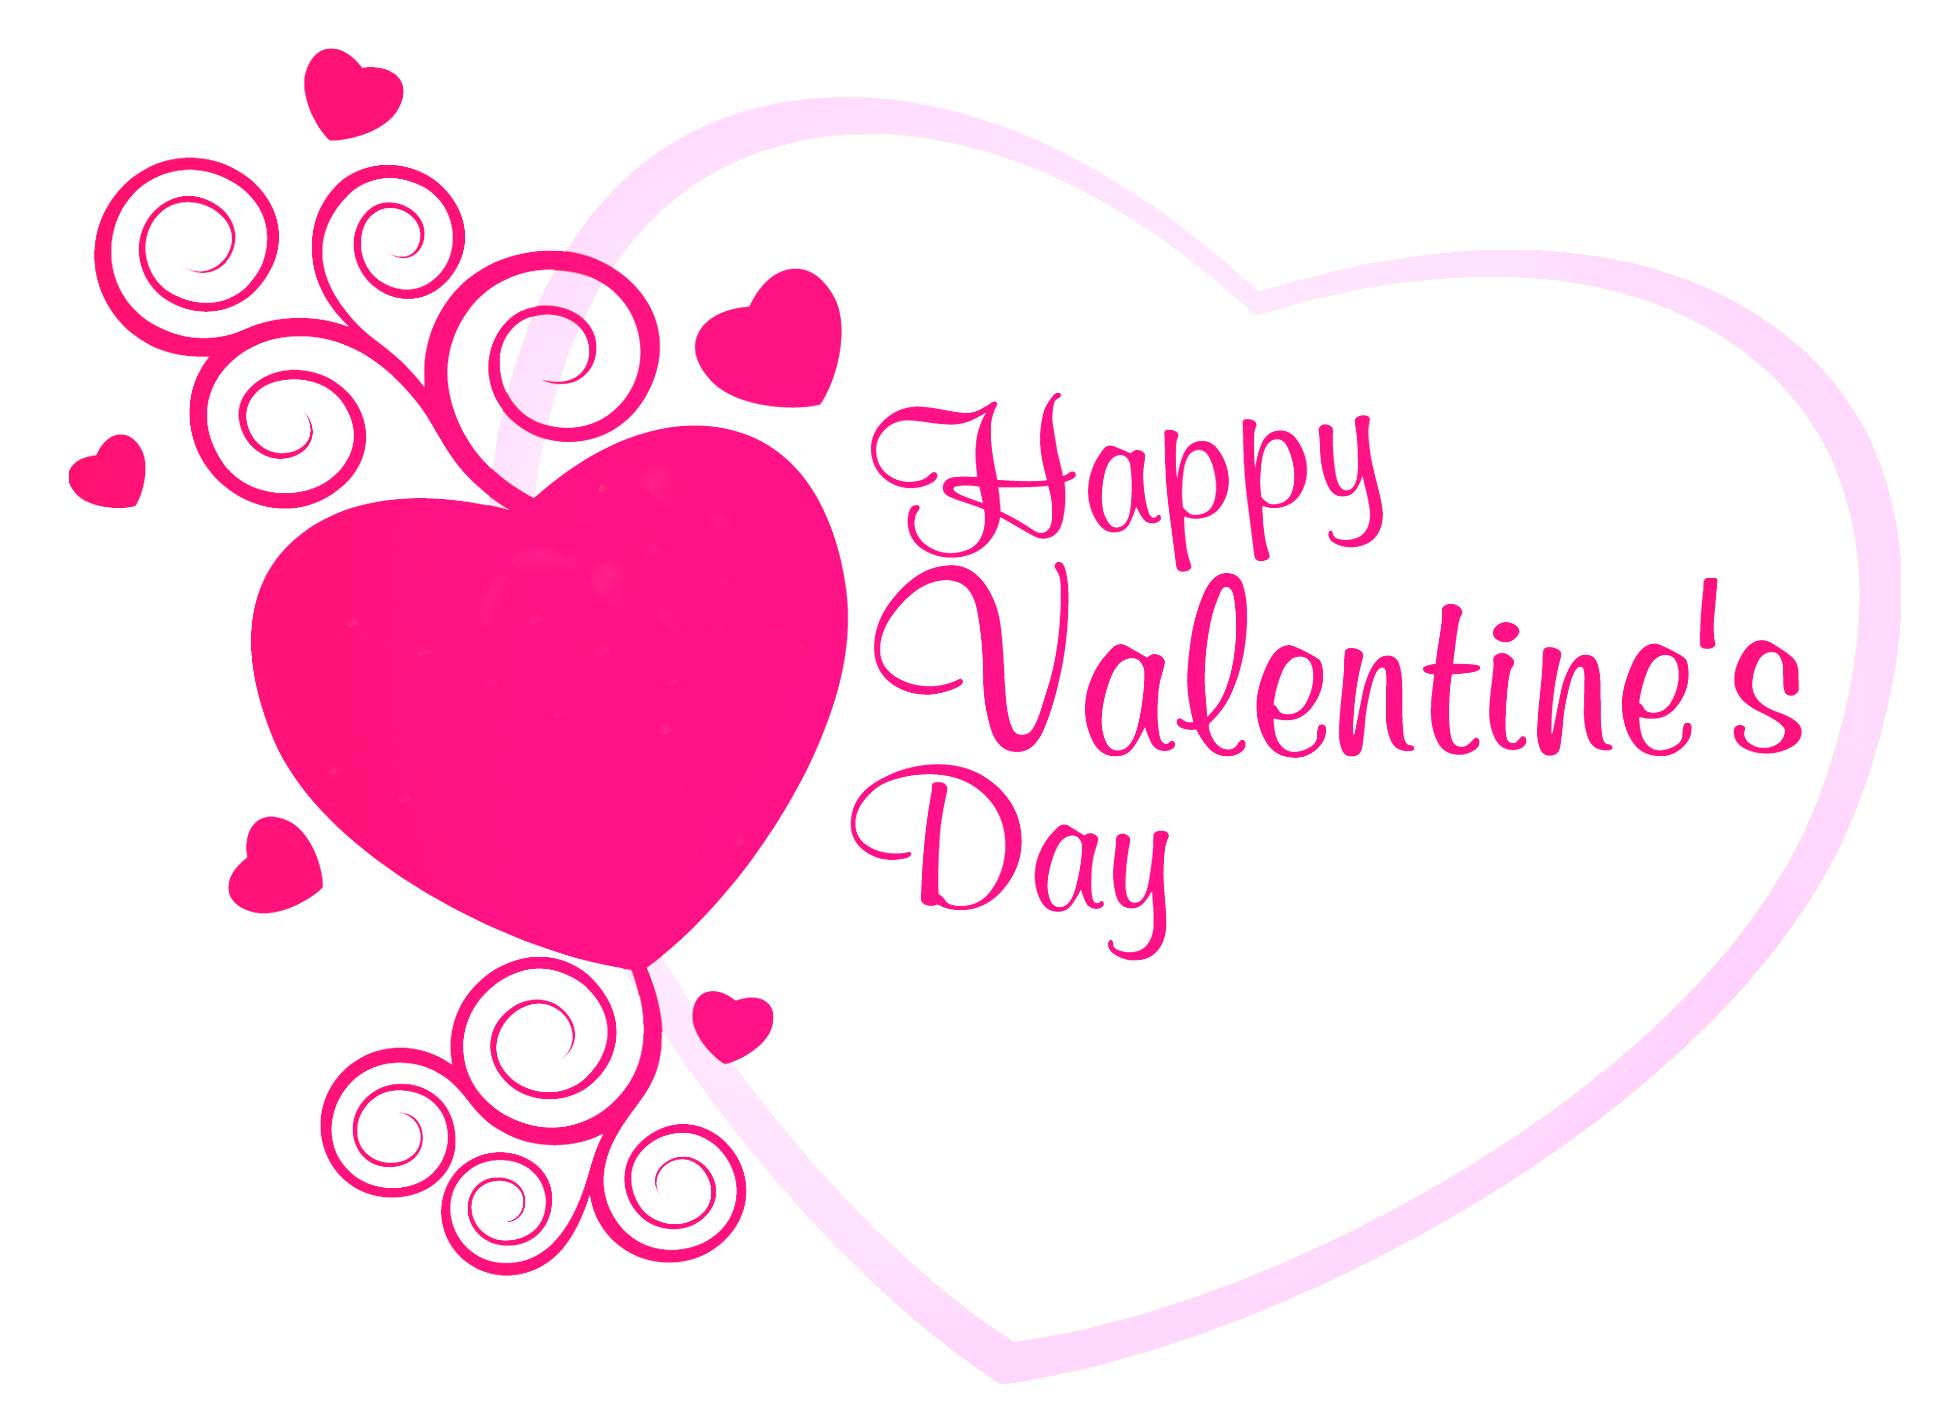 Valentines Day Clipart Images-Valentines Day Clipart Images-17